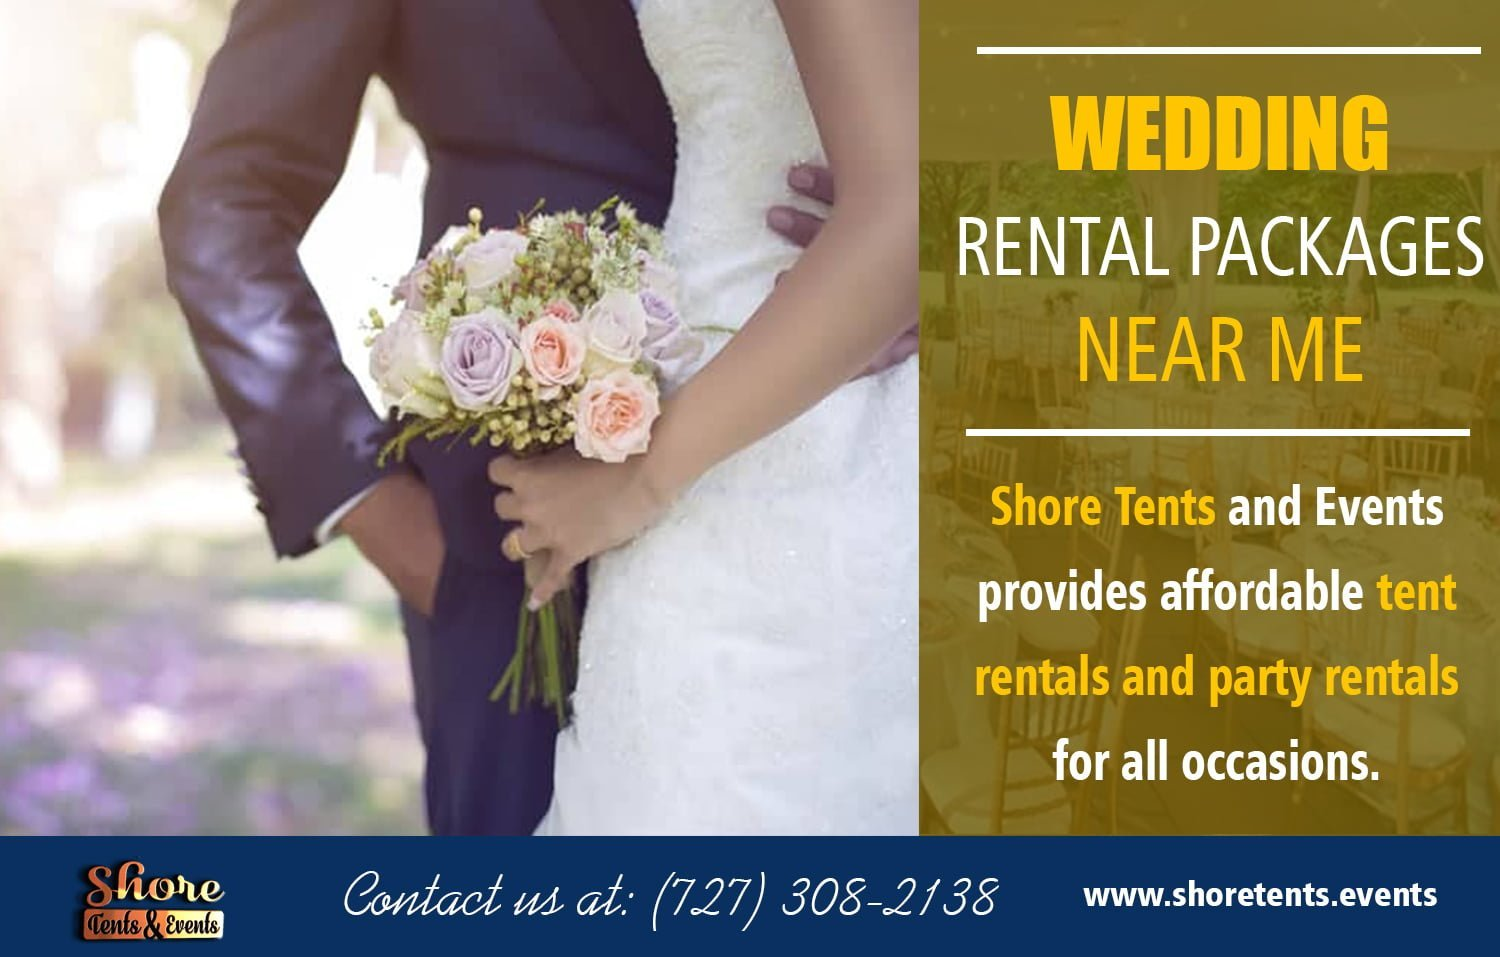 Wedding Rental Packages Near Me